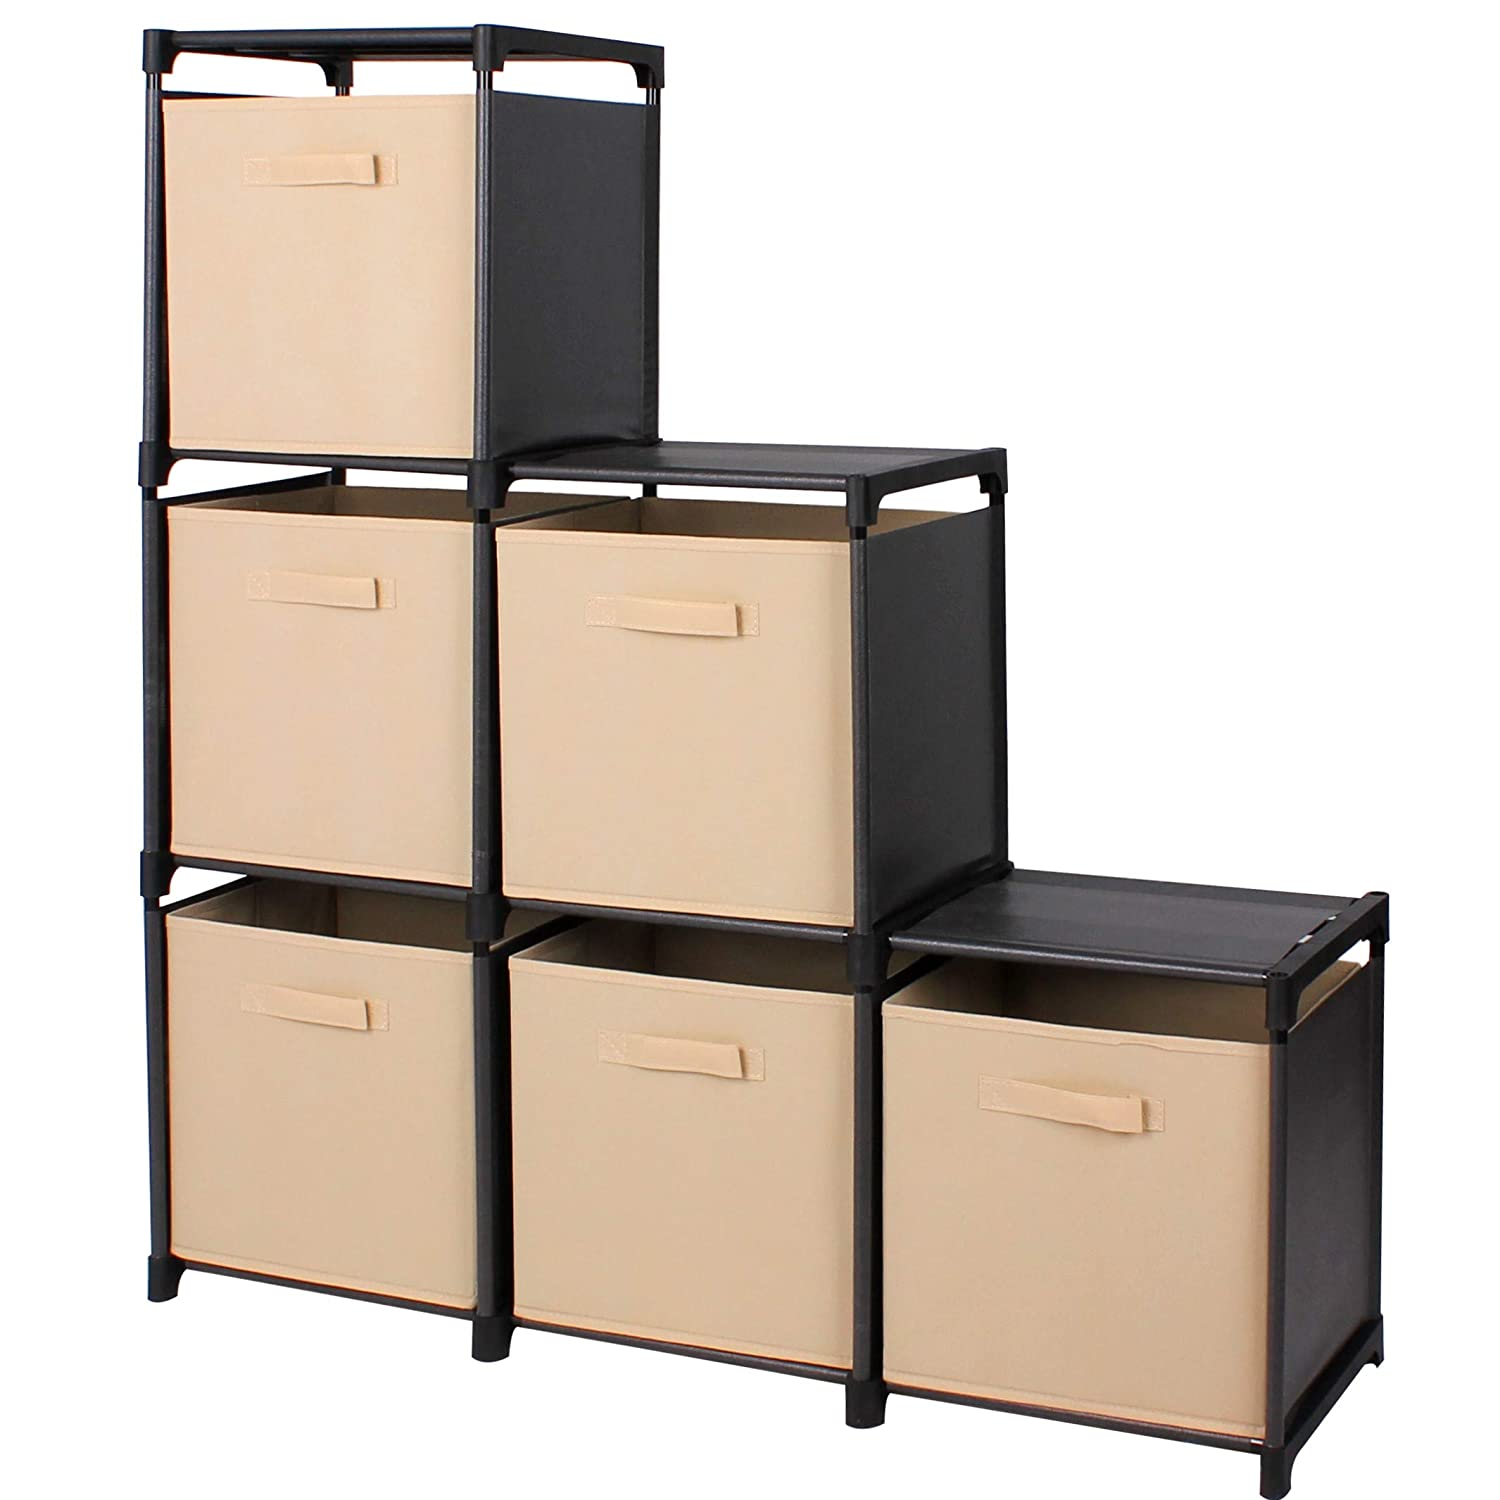 Mockins 3 Tier Storage Rack Bookcase Shelf Bundle with 6 Foldable Cube Storage Bins That Perfectly Fit Into The 6 Cube Closet Organizer Cabinet - Beige Bins … … …